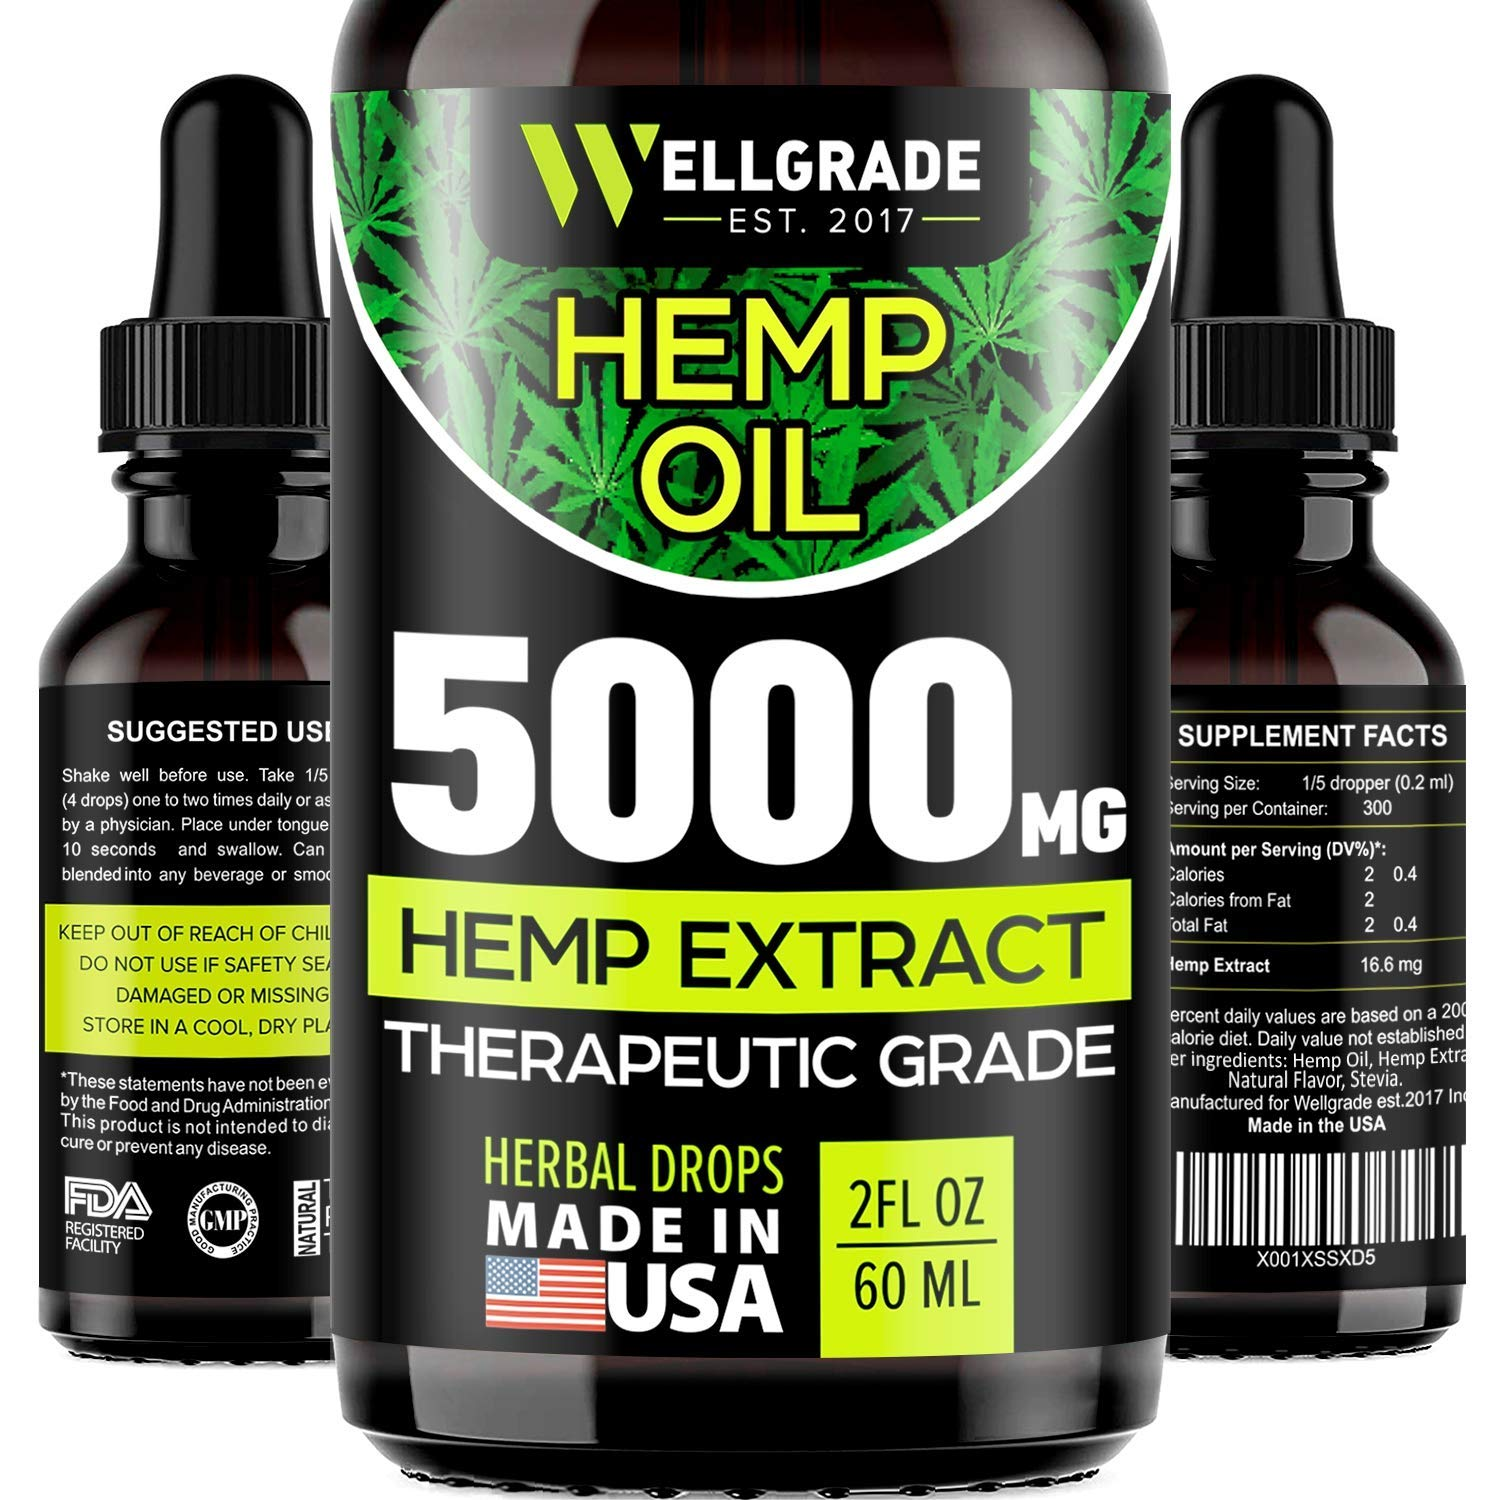 Trust Brothers 5000mg Hemp Oil 60ml Broad Spectrum, Pain & Anxiety Relief, Stress Support, Healthy Mood, Sleep, Zero THC, Best Pure Herbal Supplements, Made in USA